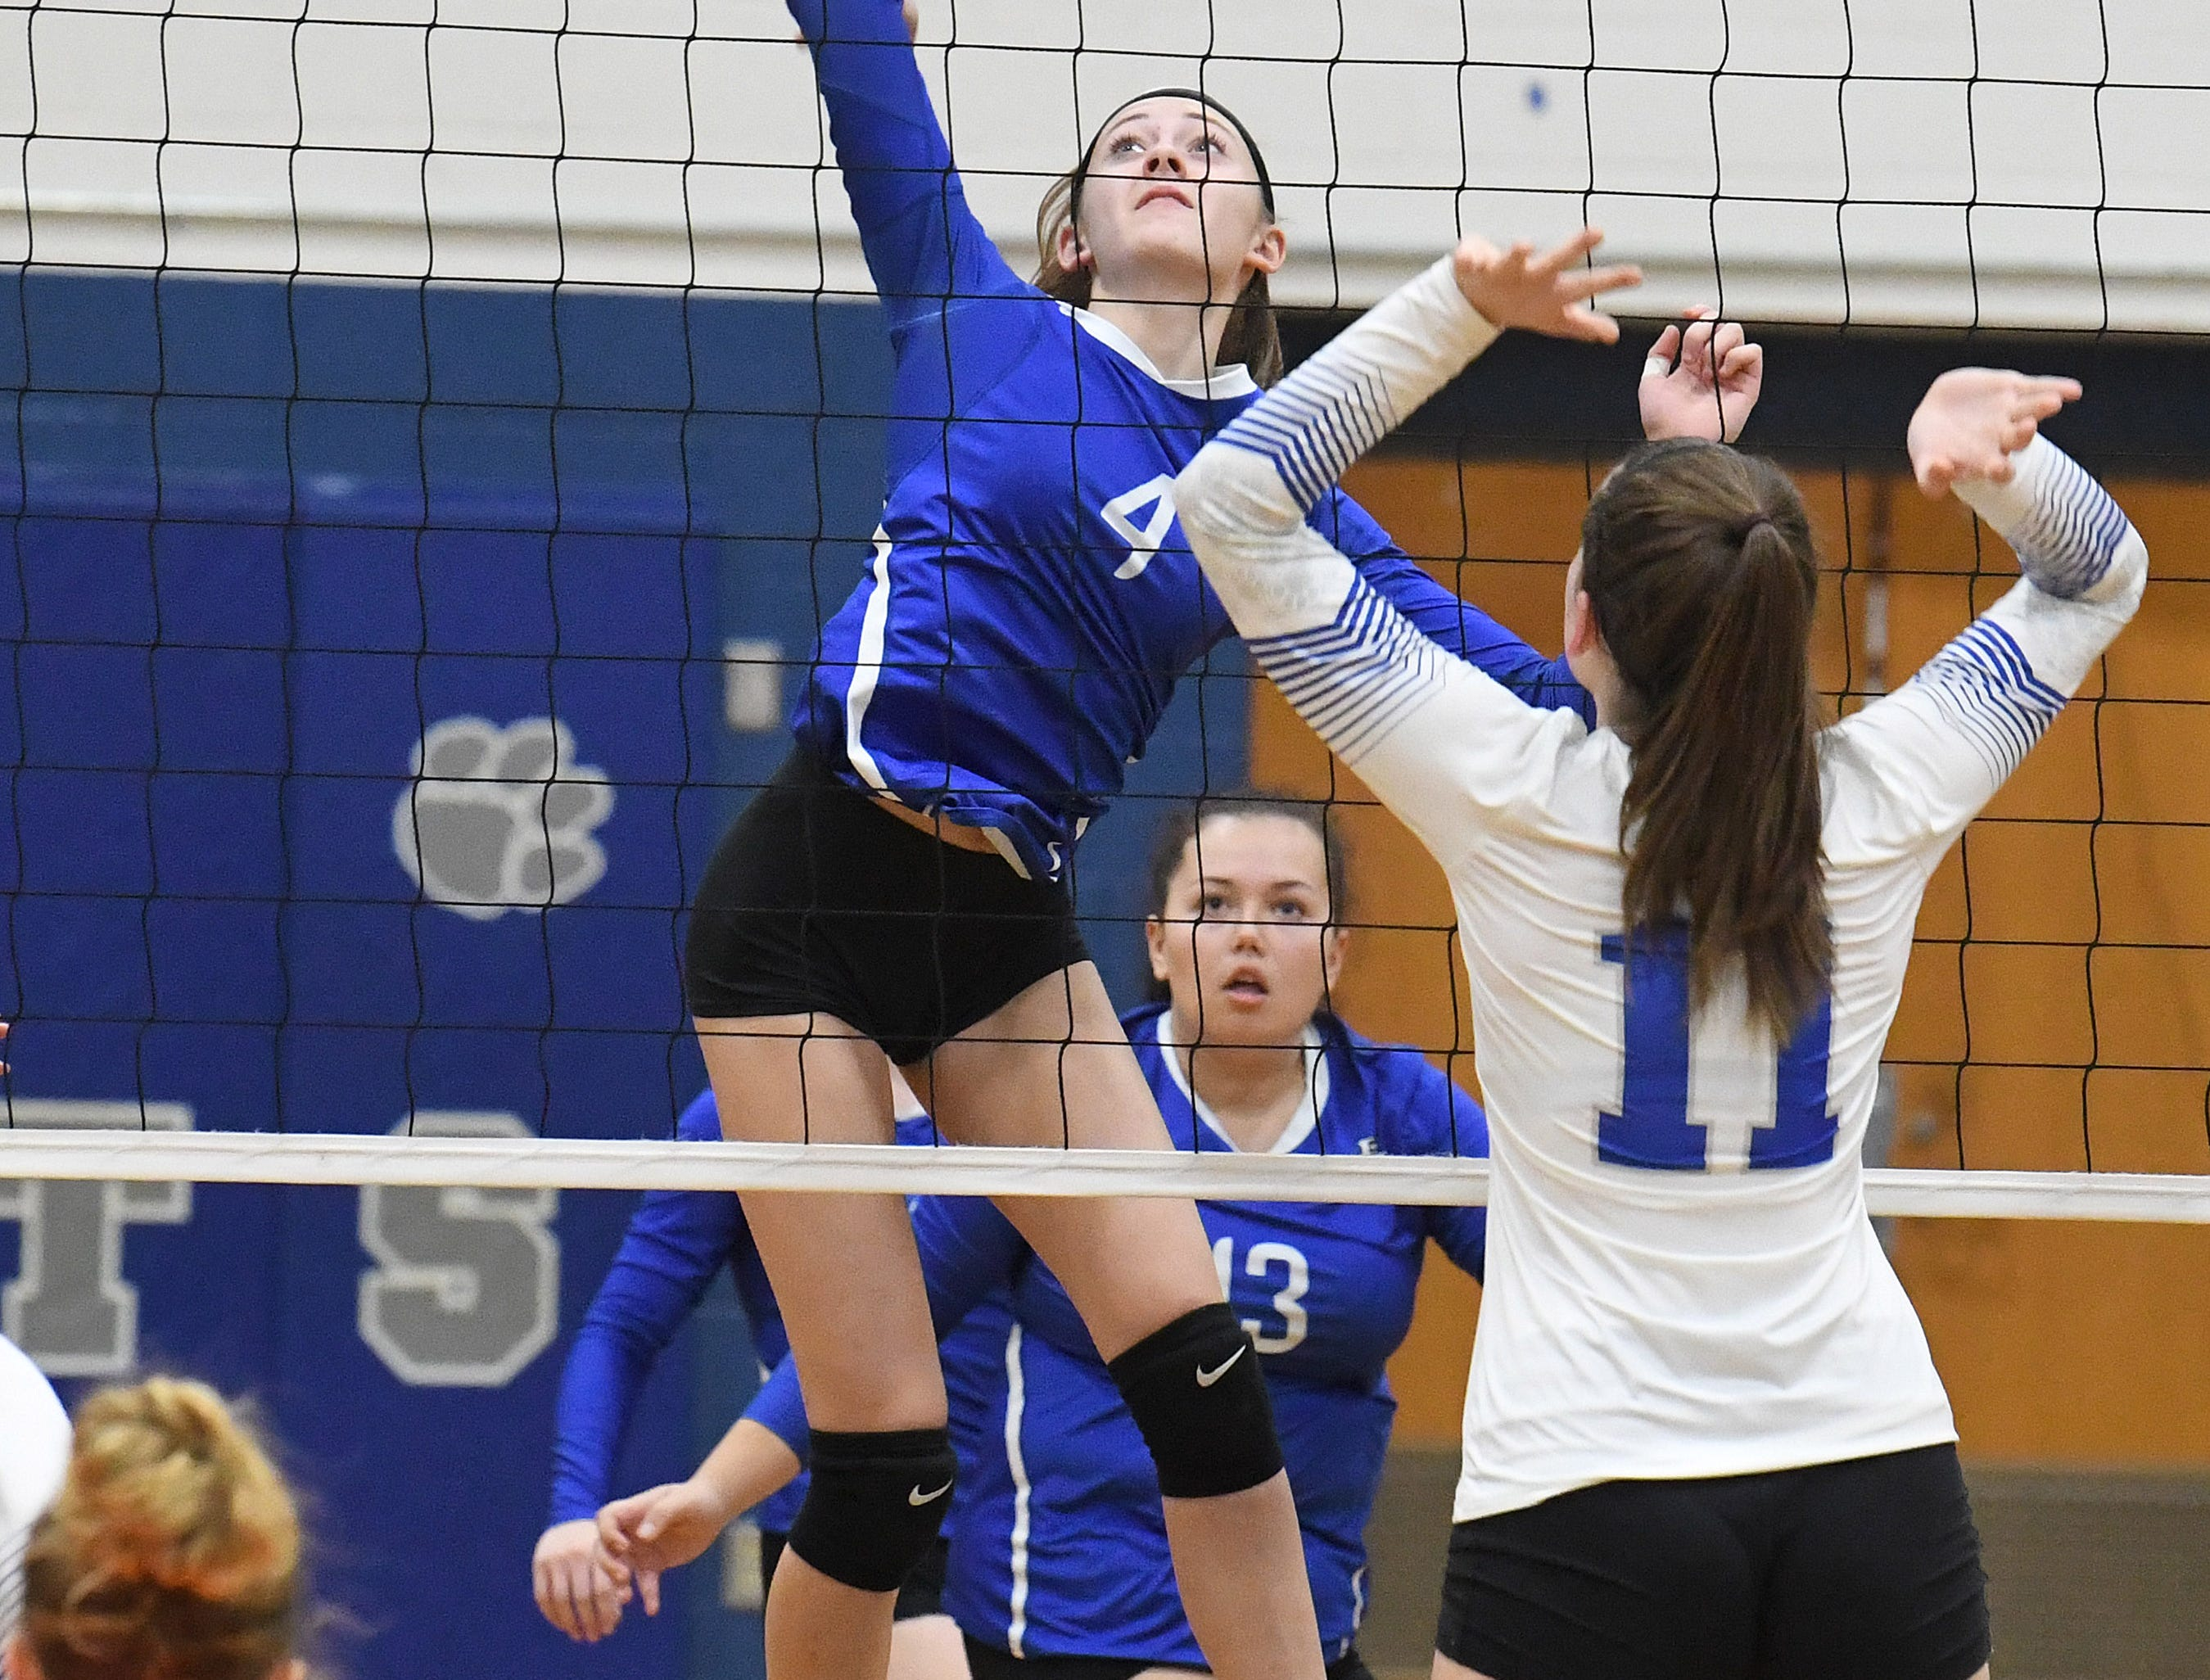 Fort Defiance's Leilani Goggin draws back to spike the ball during a Region 3C semifinal match played in Lexington on Monday, Nov. 5, 2018.